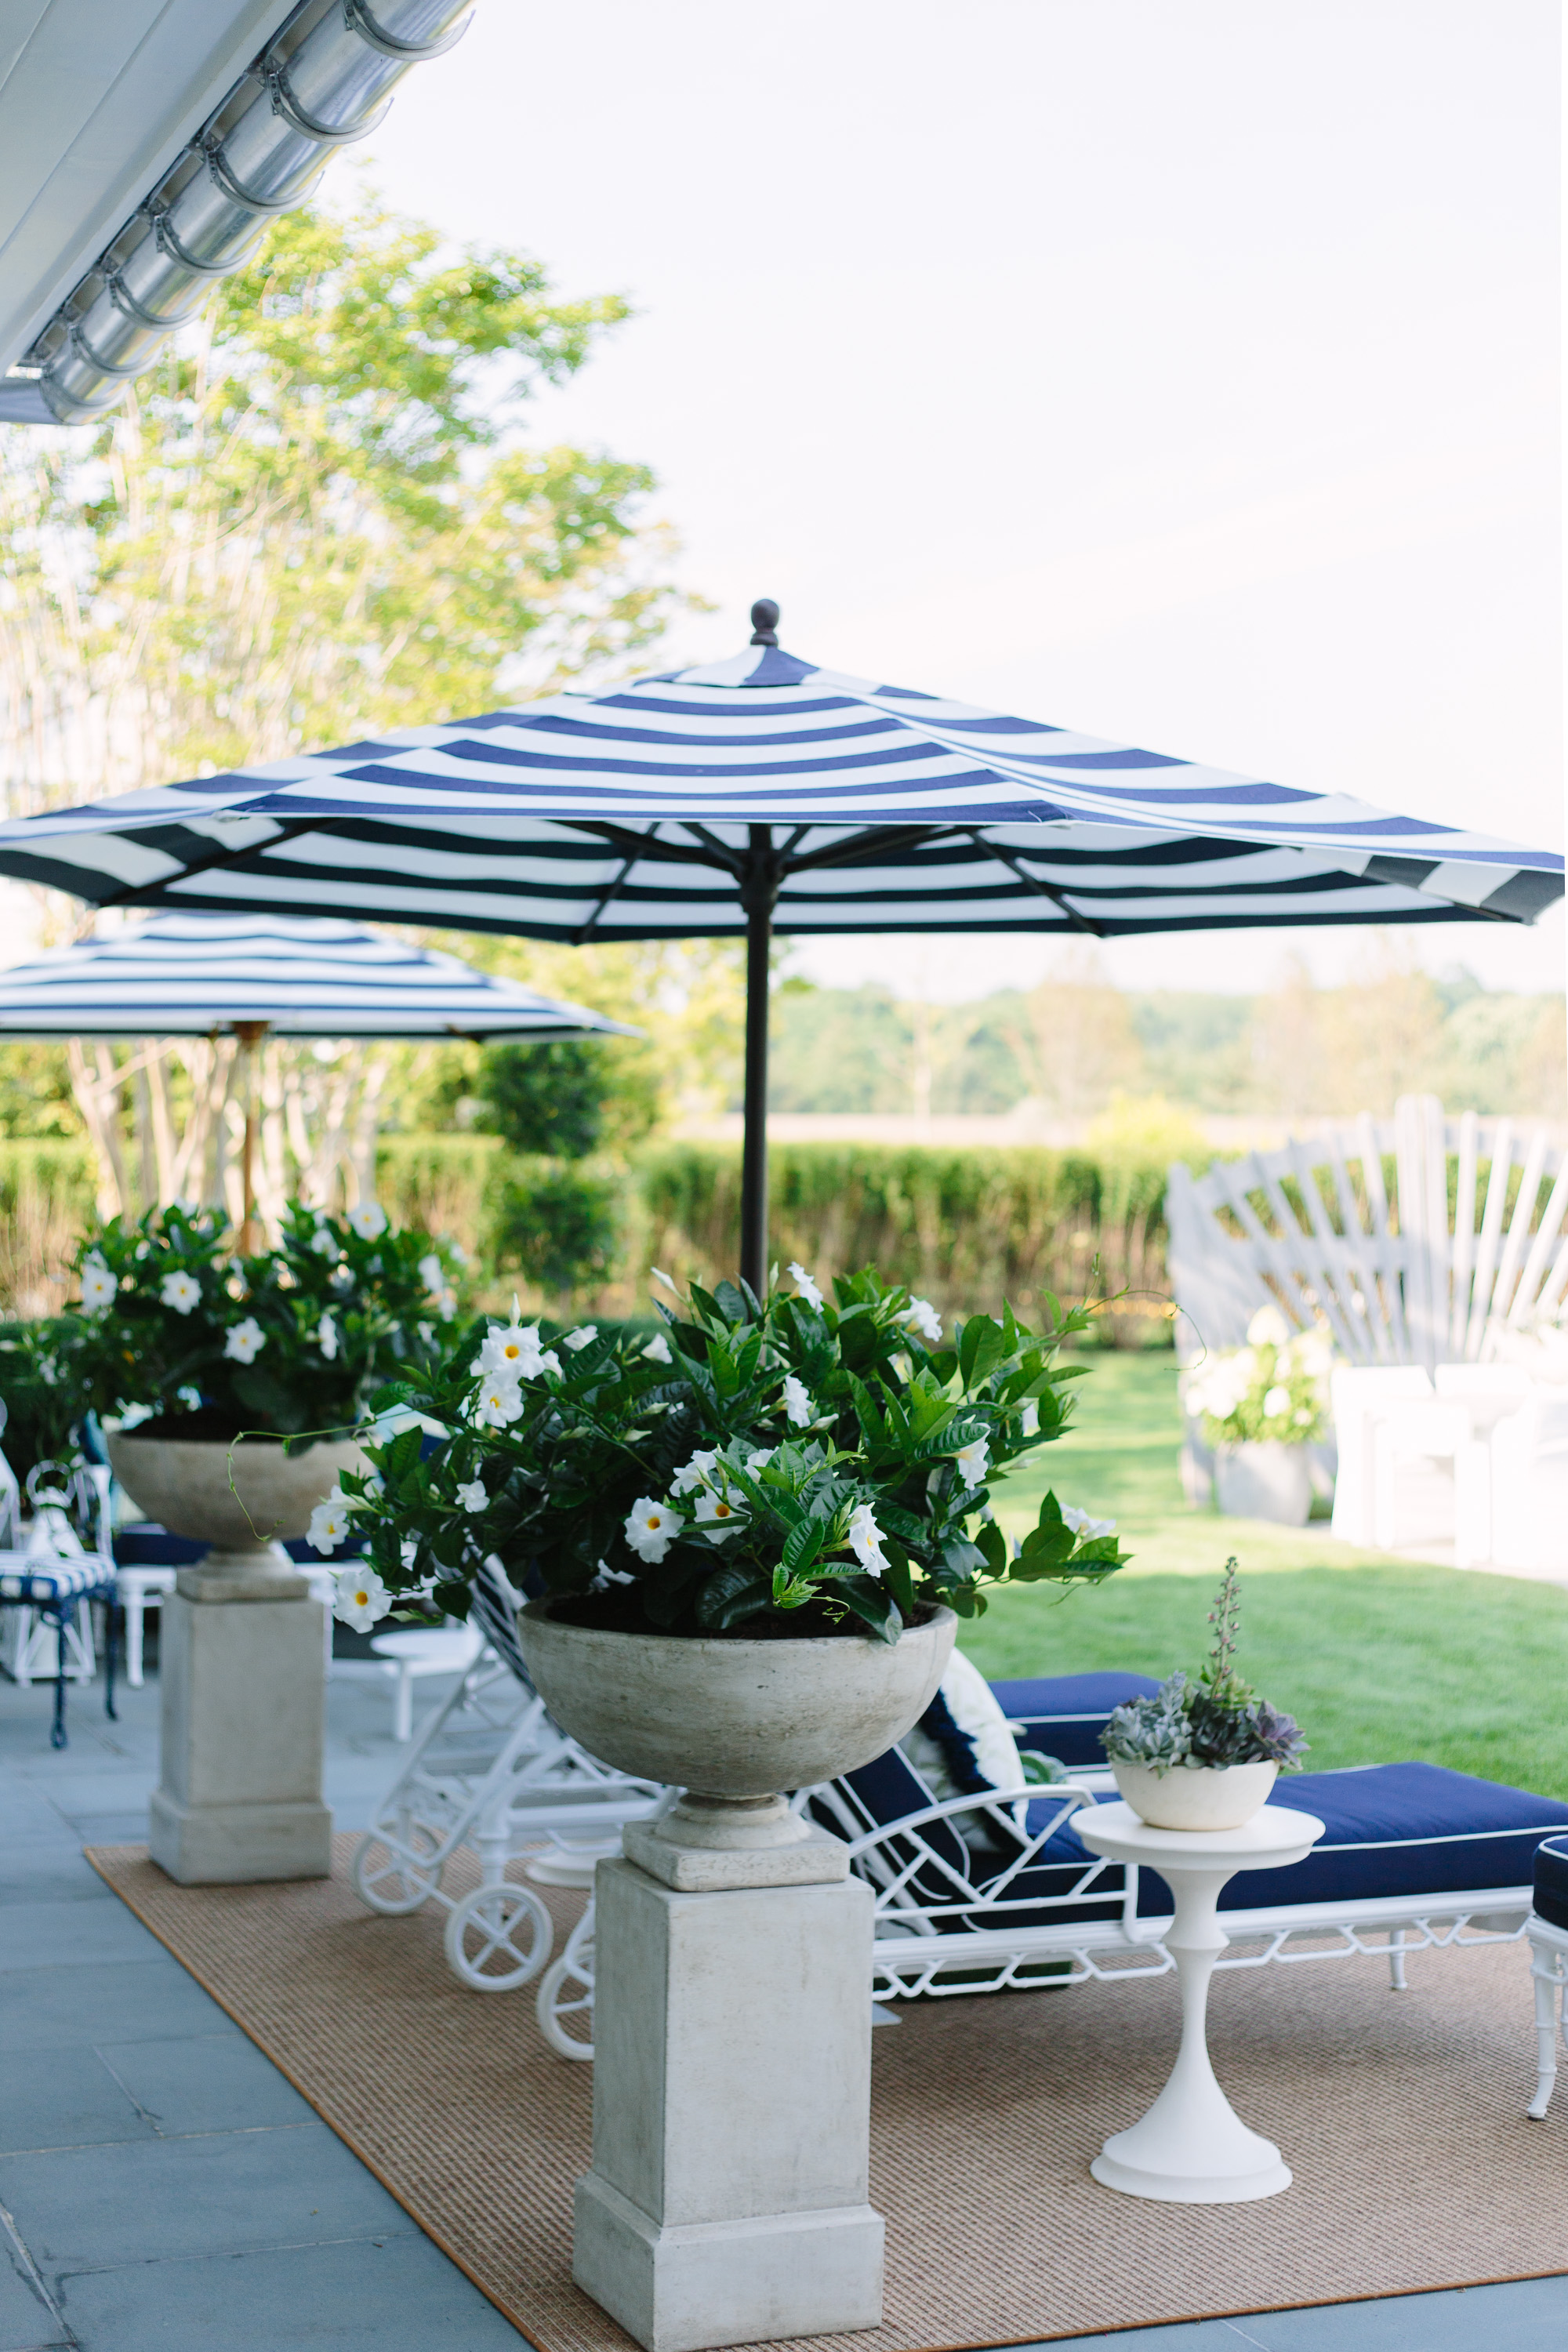 Outdoor space by Gregory Shano at the 2017 Hampton Designer Showhouse